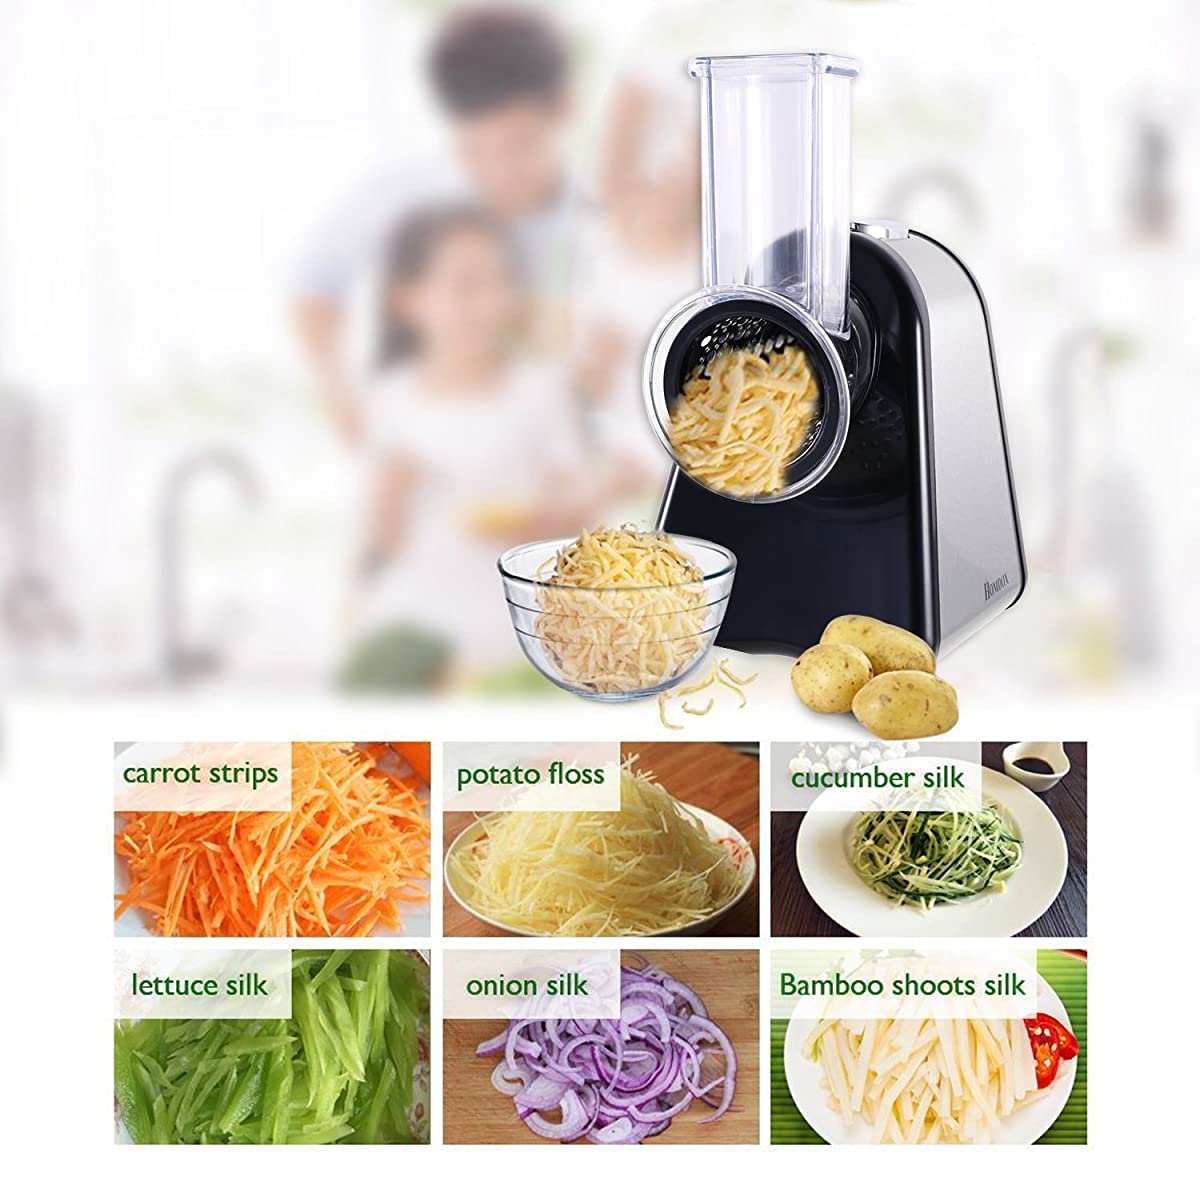 Homedox Salad Maker Professional SaladShooter Electric Slicer Shredder